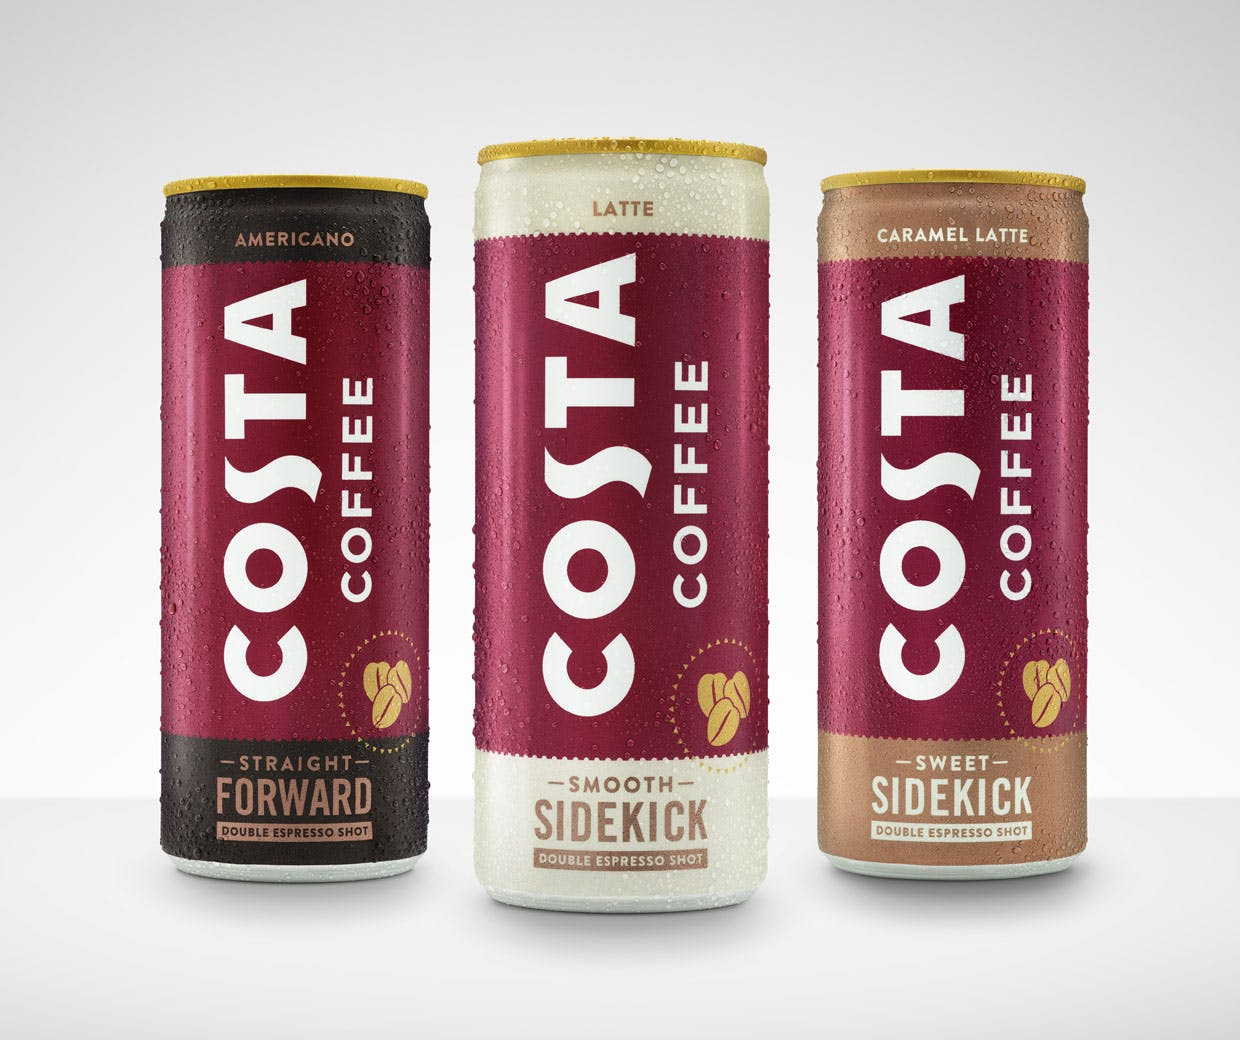 Costa launches first ready-to-drink product